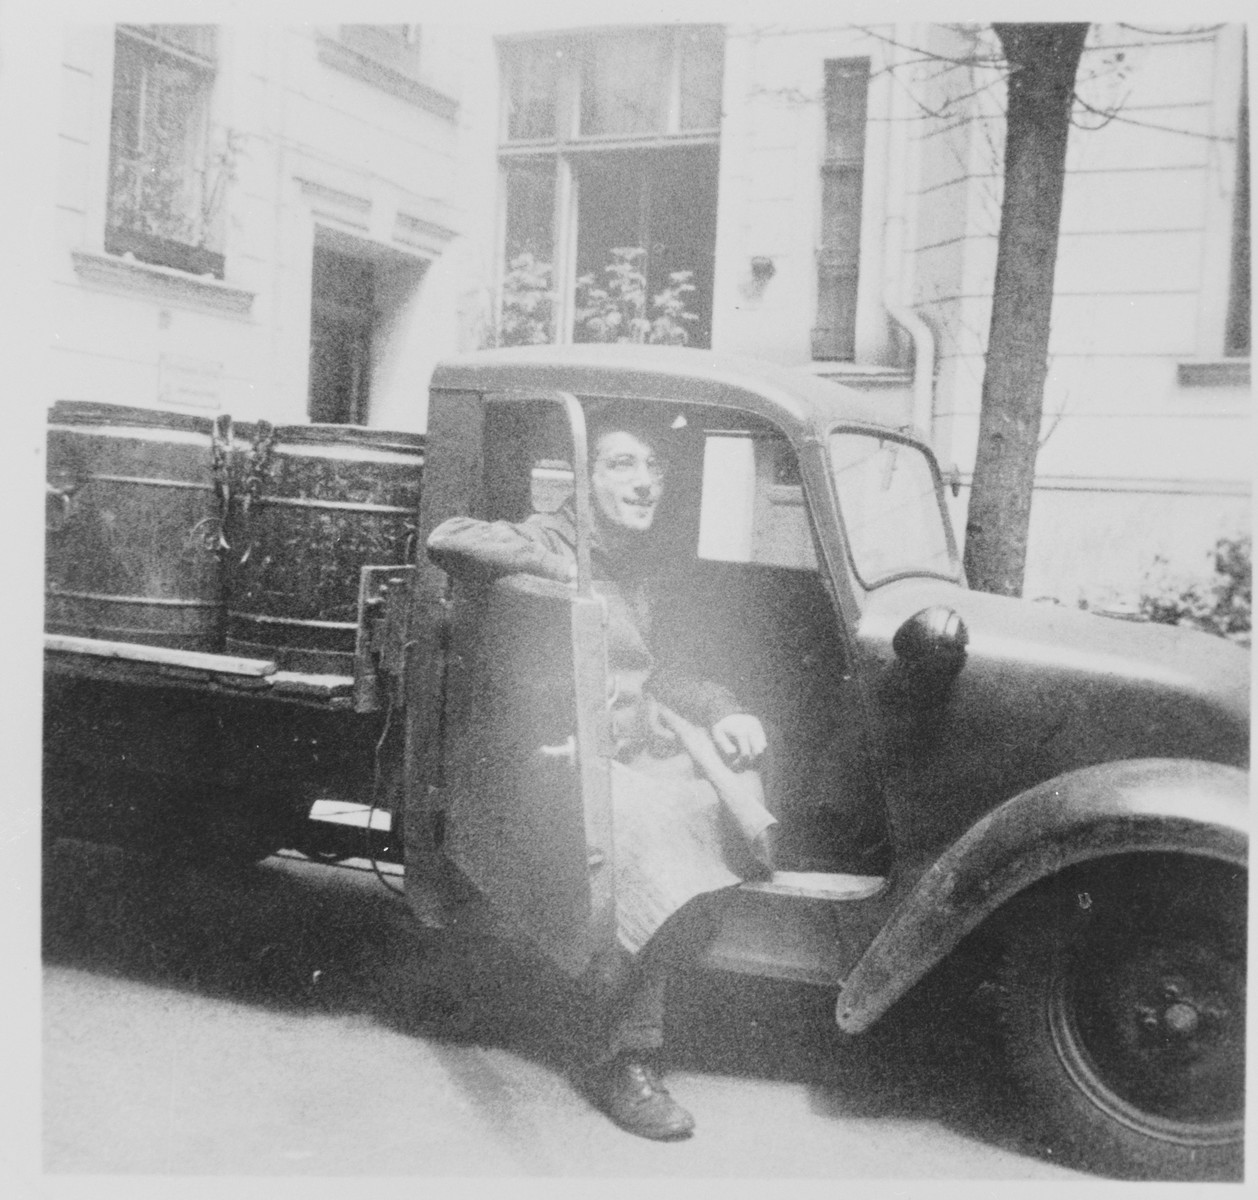 Jizchak Schwersenz sits in a truck outside the Jewish soup kitchen on Gormann Strasse.